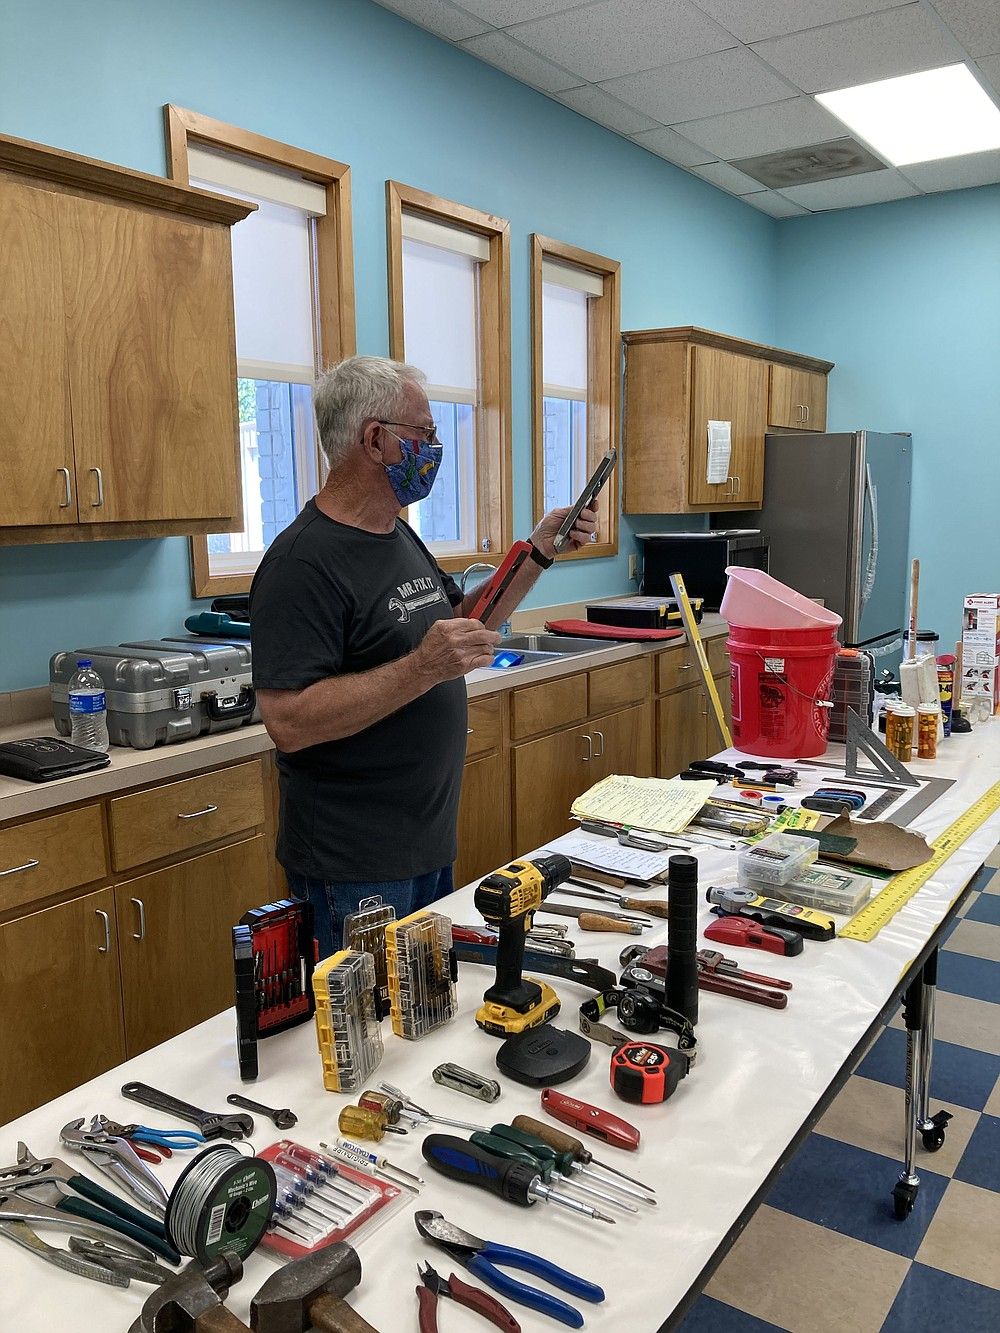 Stan Johnson, who has a background in electronics, makes a presentation at the Tool 101 class at the White Hall Library, a branch of the Pine Bluff/Jefferson County Library System. (Special to The Commercial/White Hall Friends of the Library)